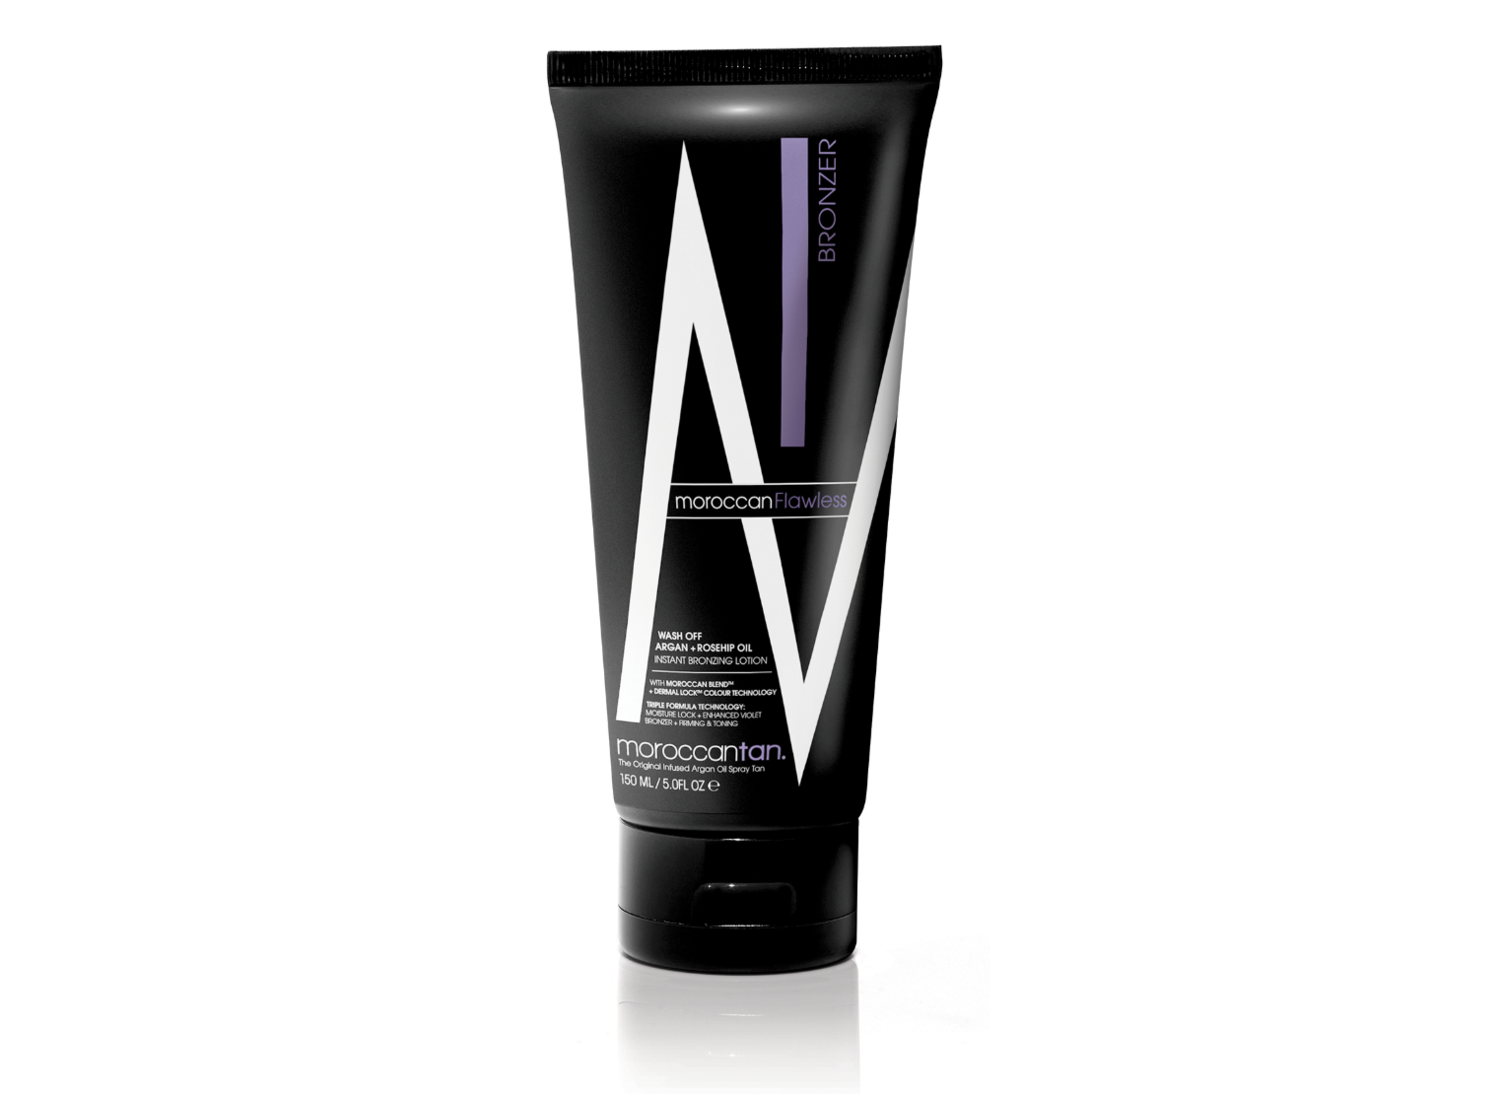 MoroccanTan Flawless Instant wash off lotion